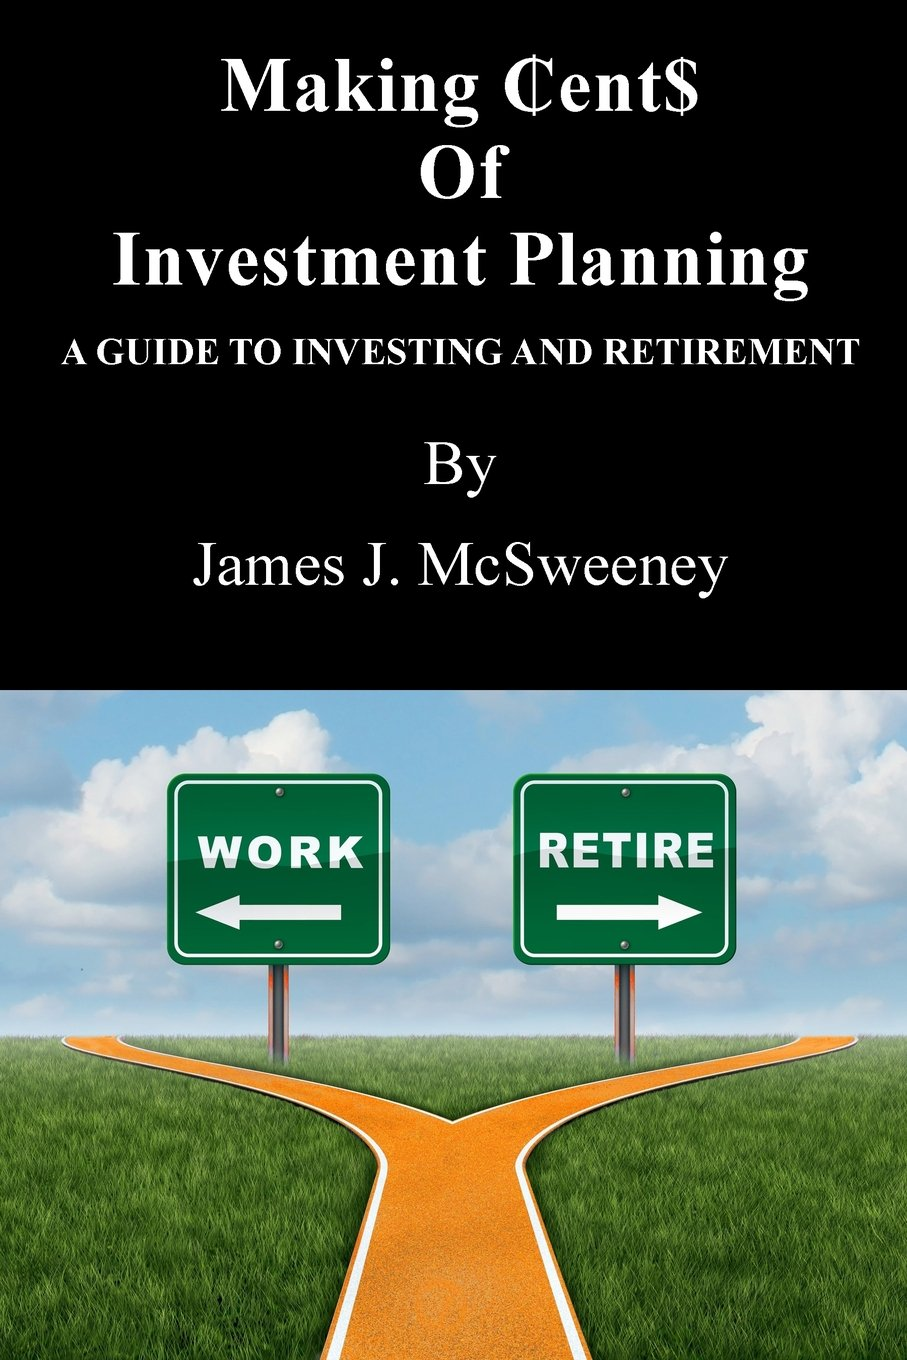 Making ₵ent$ of Investment Planning